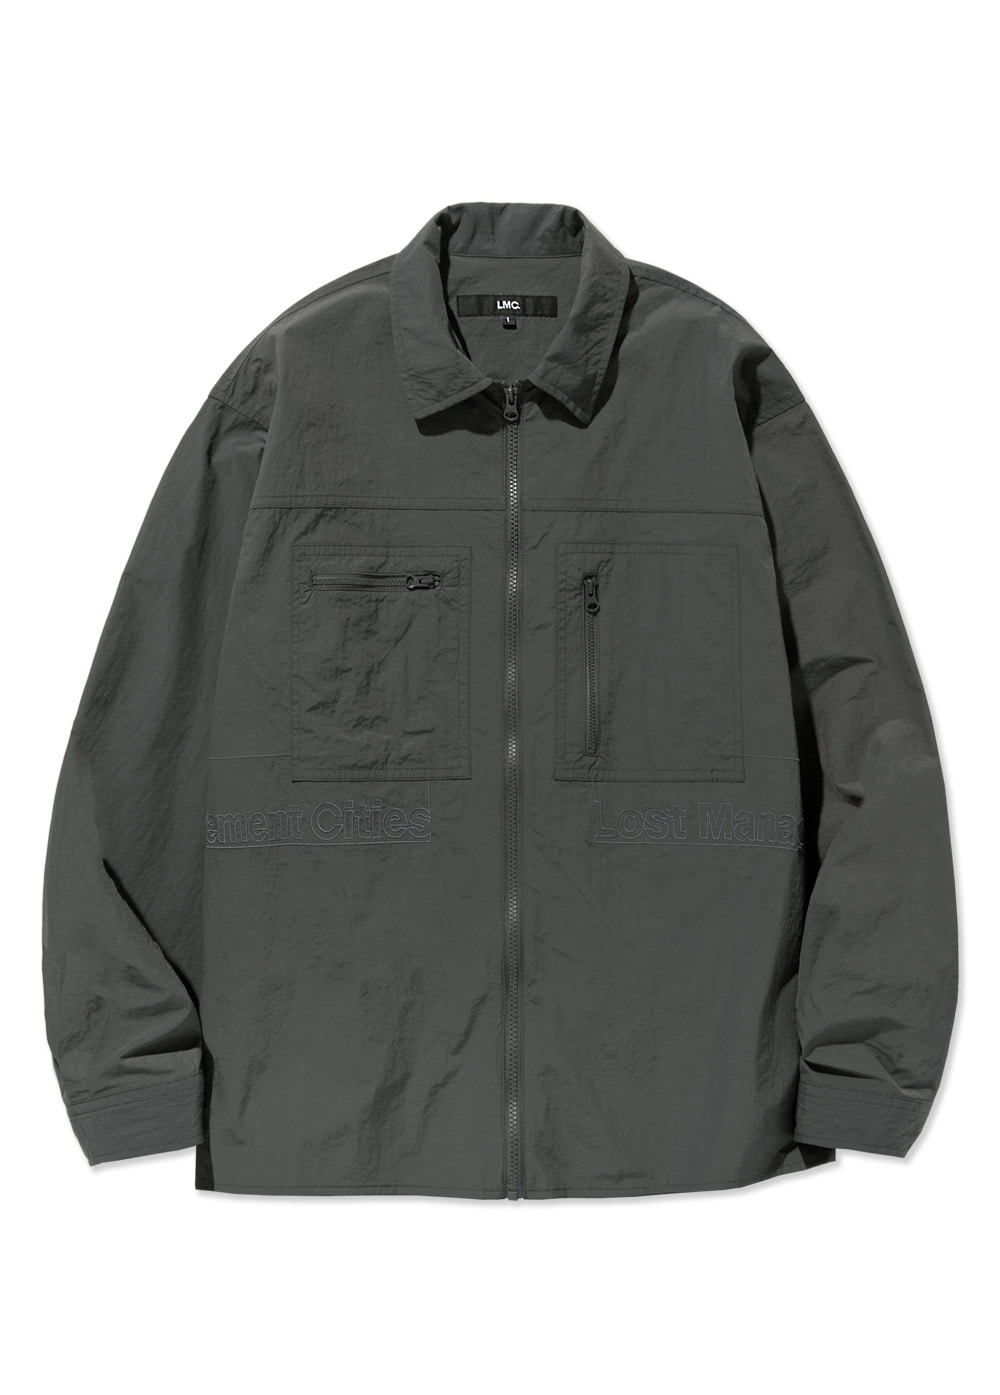 20SS LMC FULL ZIP WORK SHIRT gray